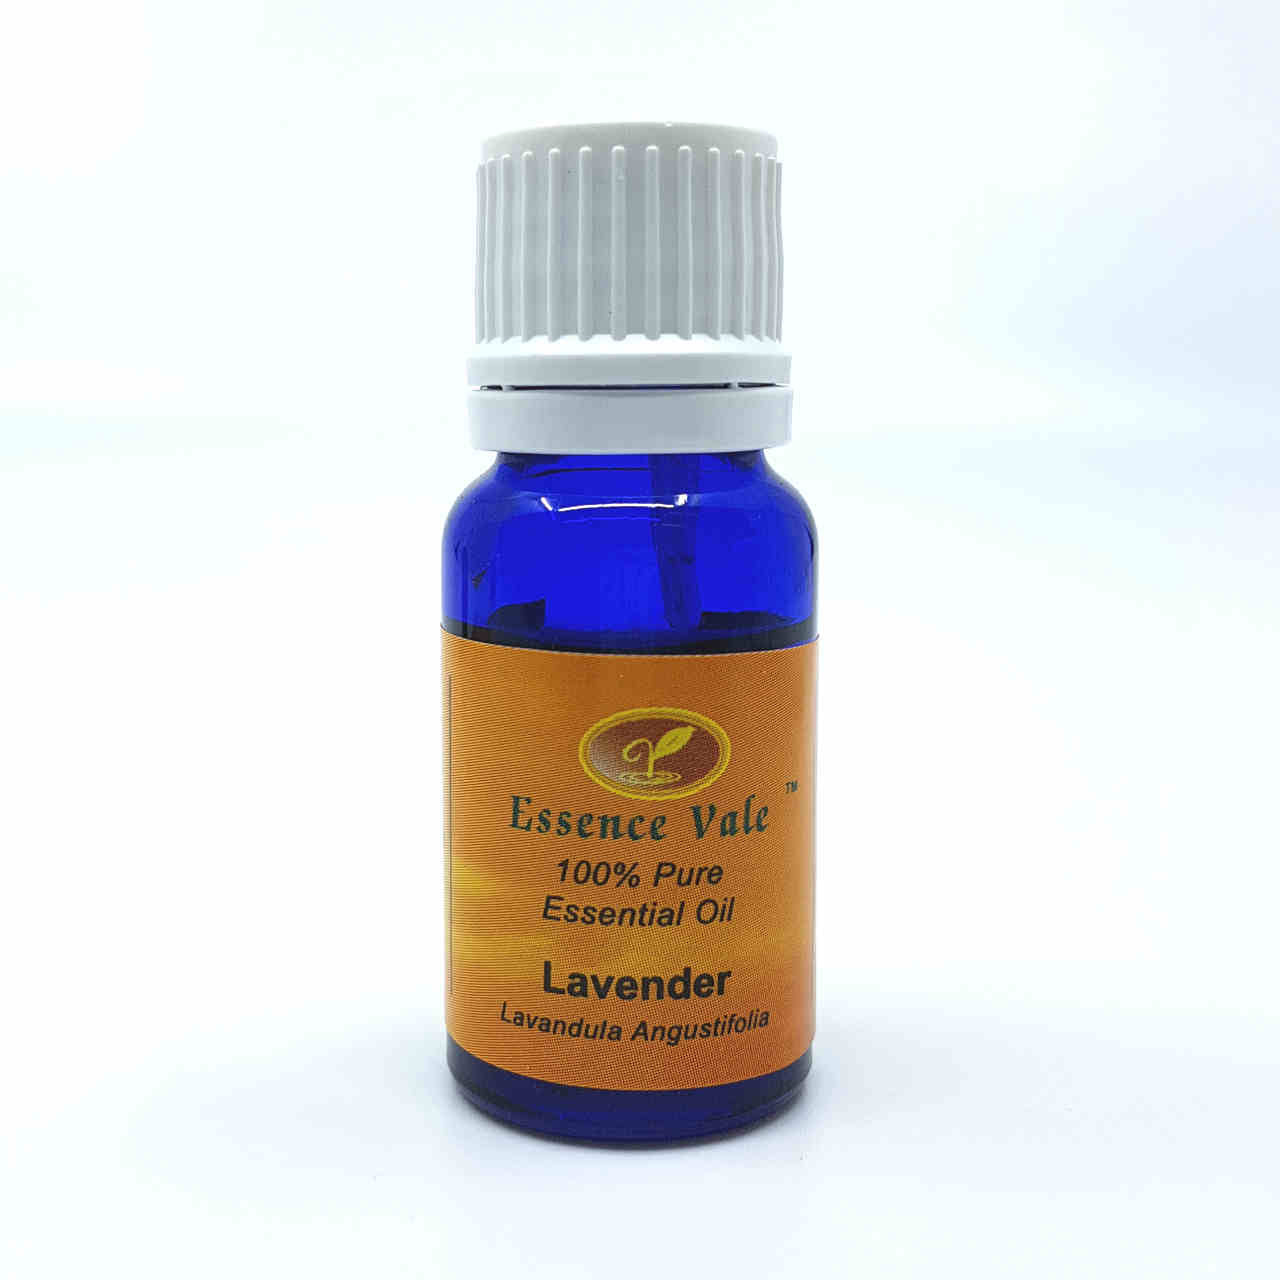 ESSENCE VALE 100% Pure Lavender Essential Oil